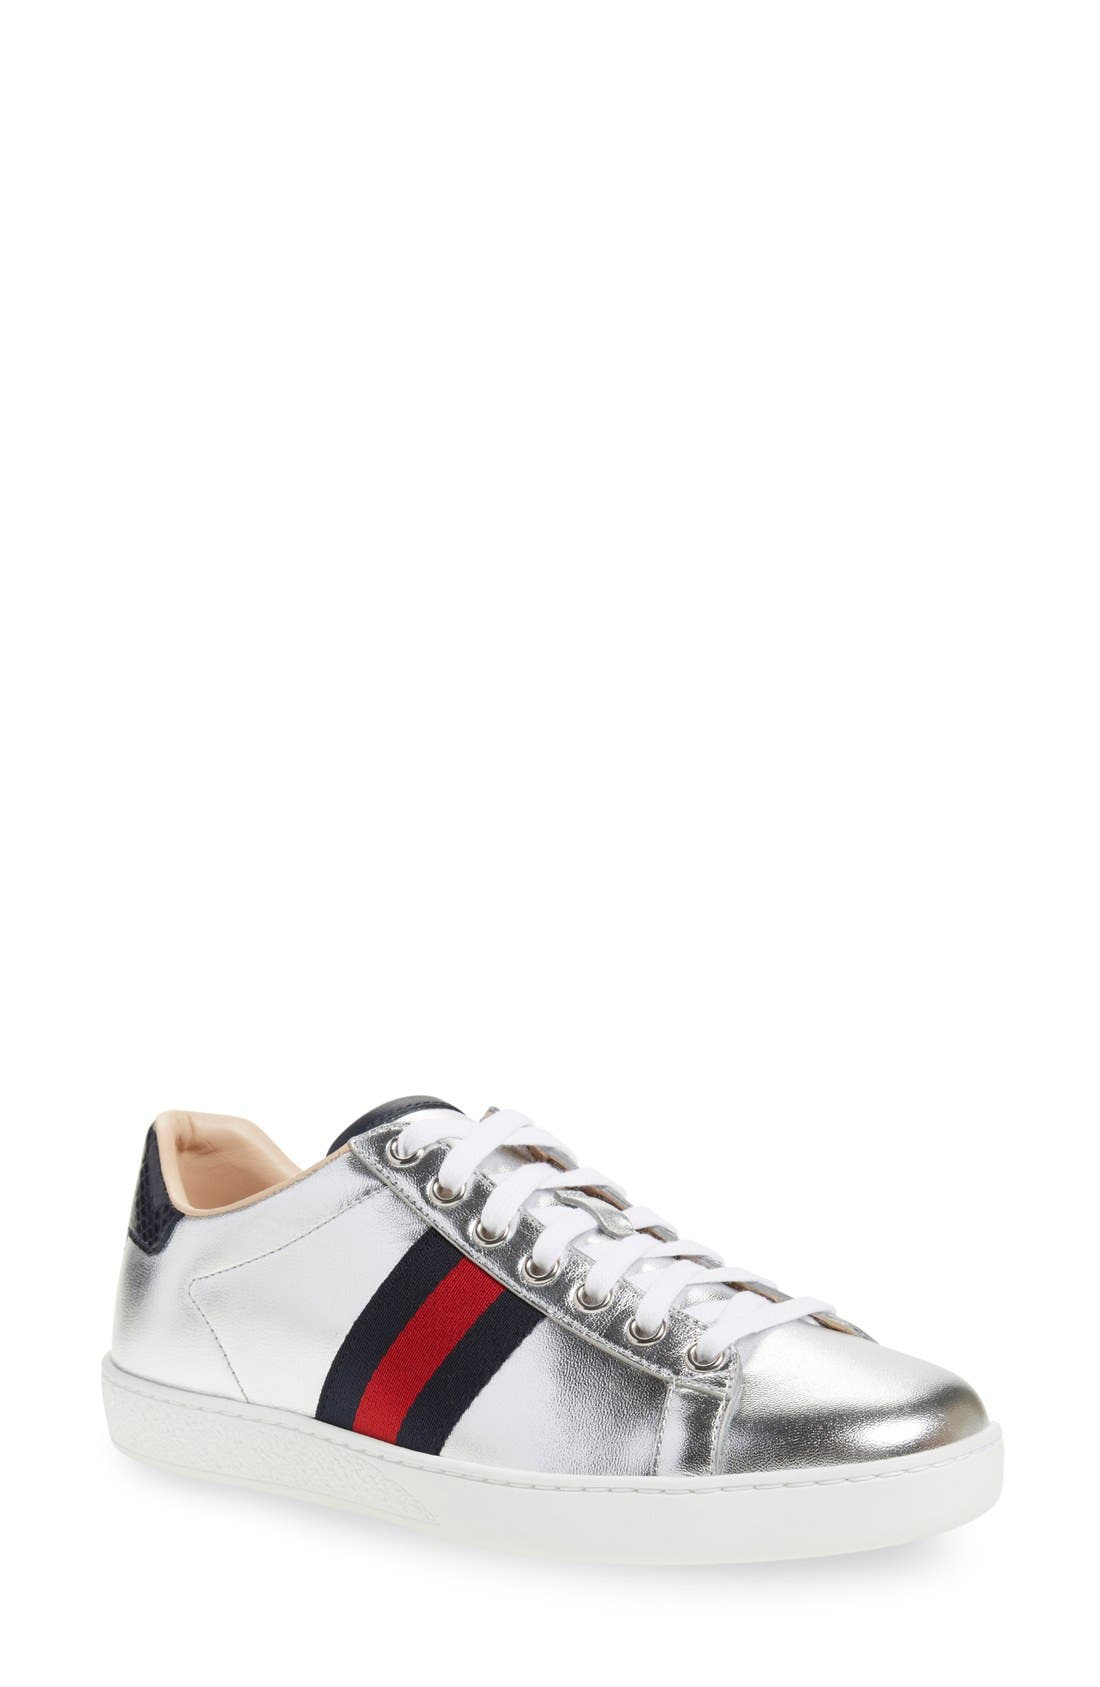 Gucci 'New Ace' Metallic Low Top